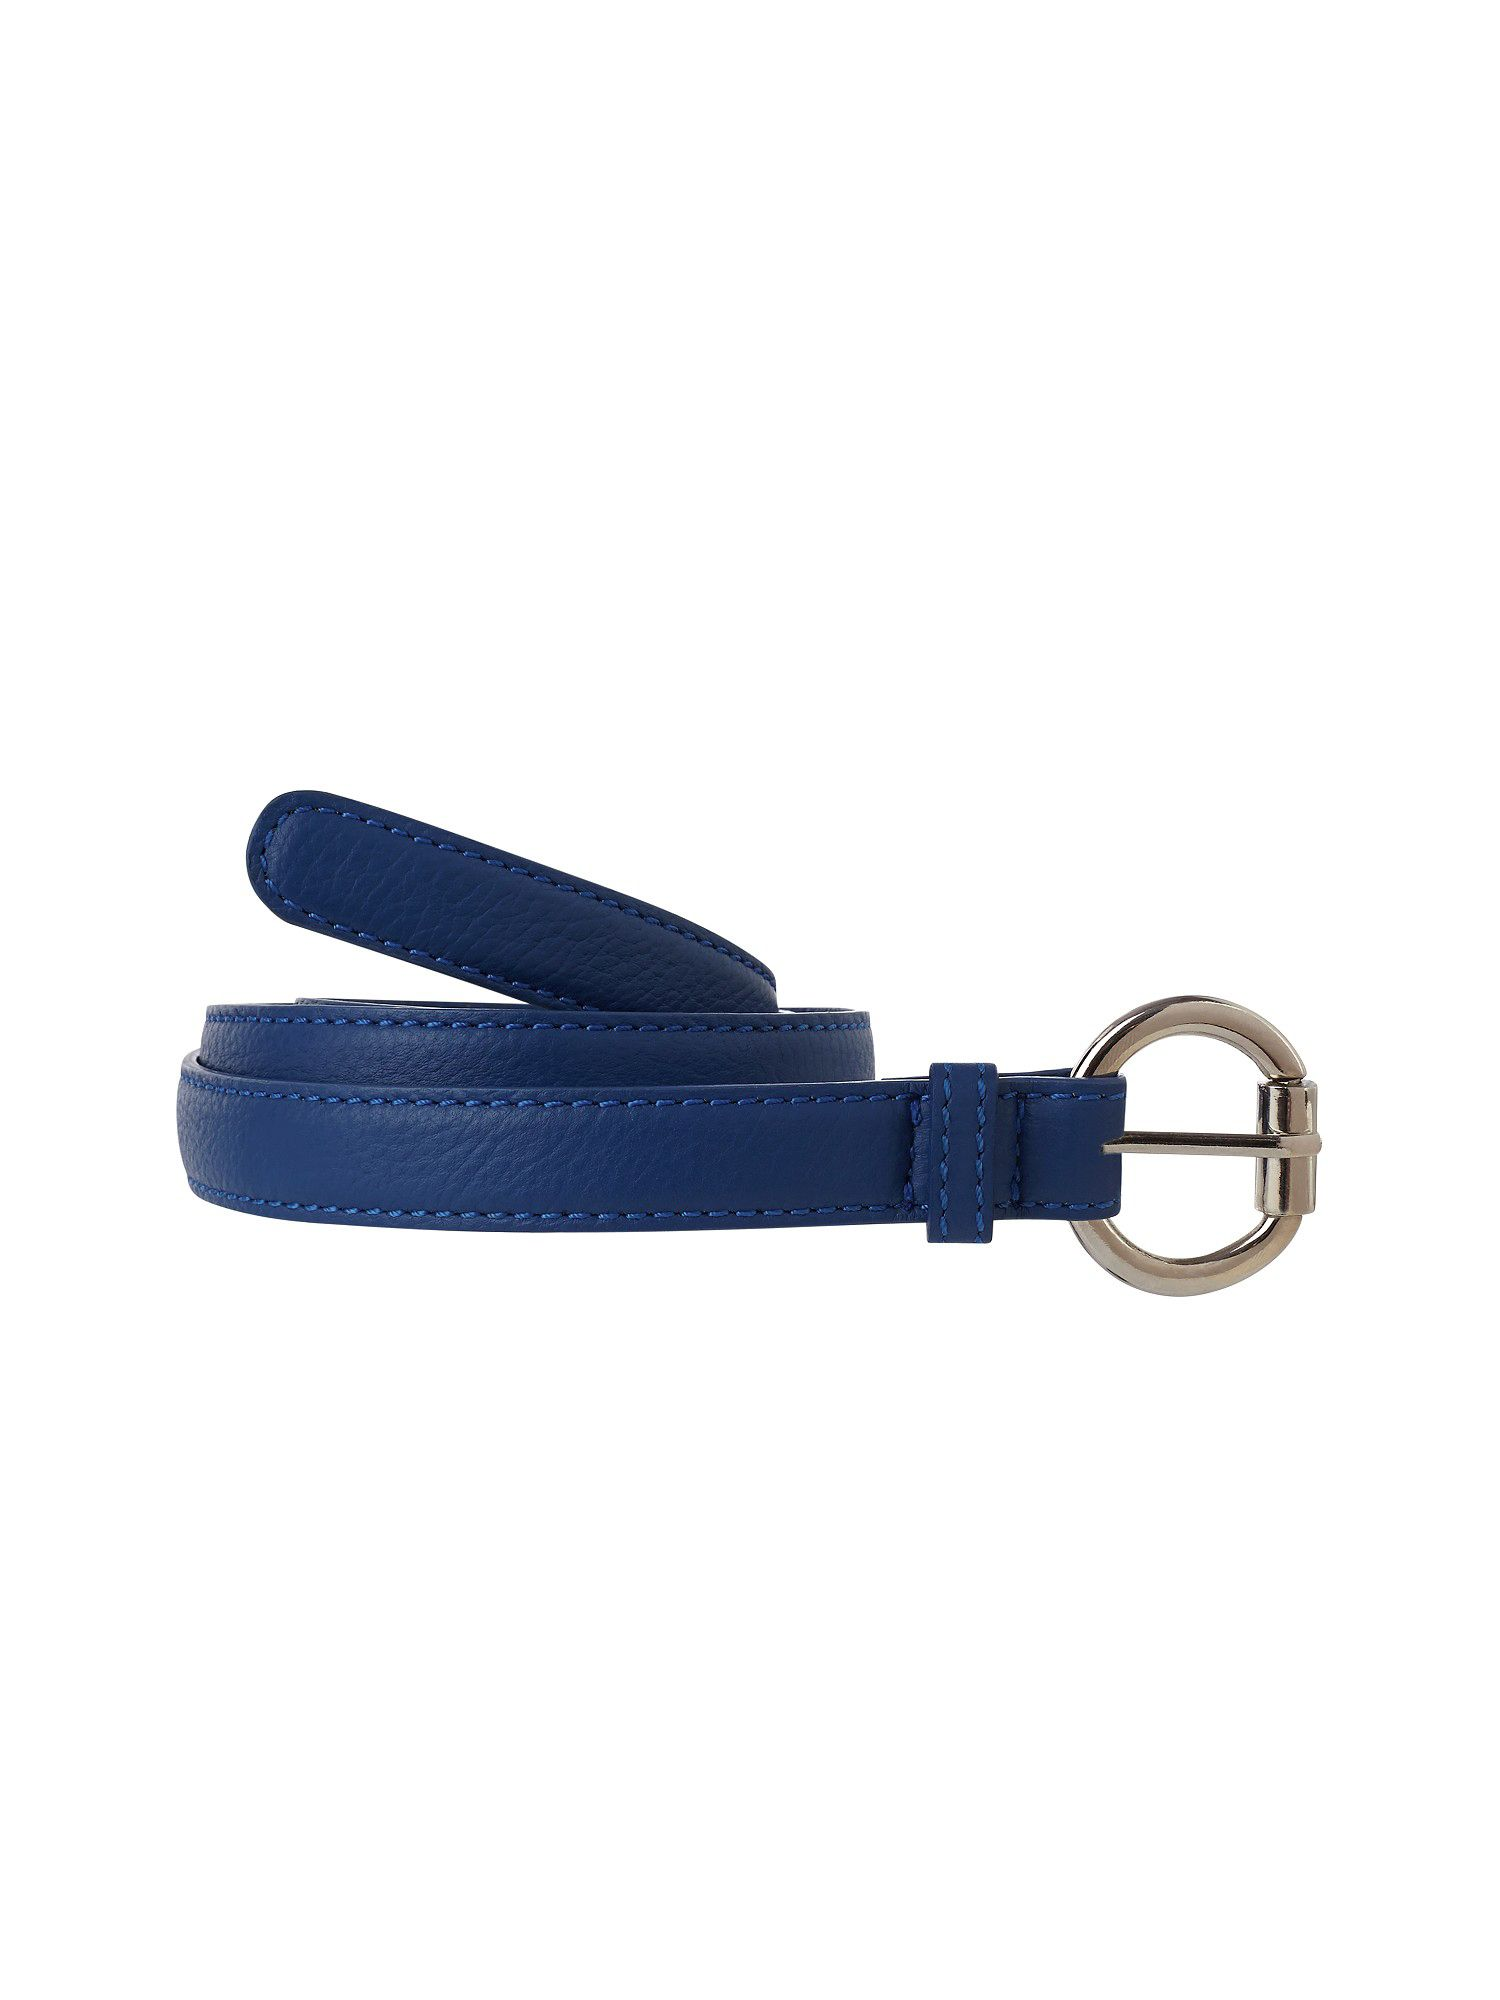 Marine blue belt